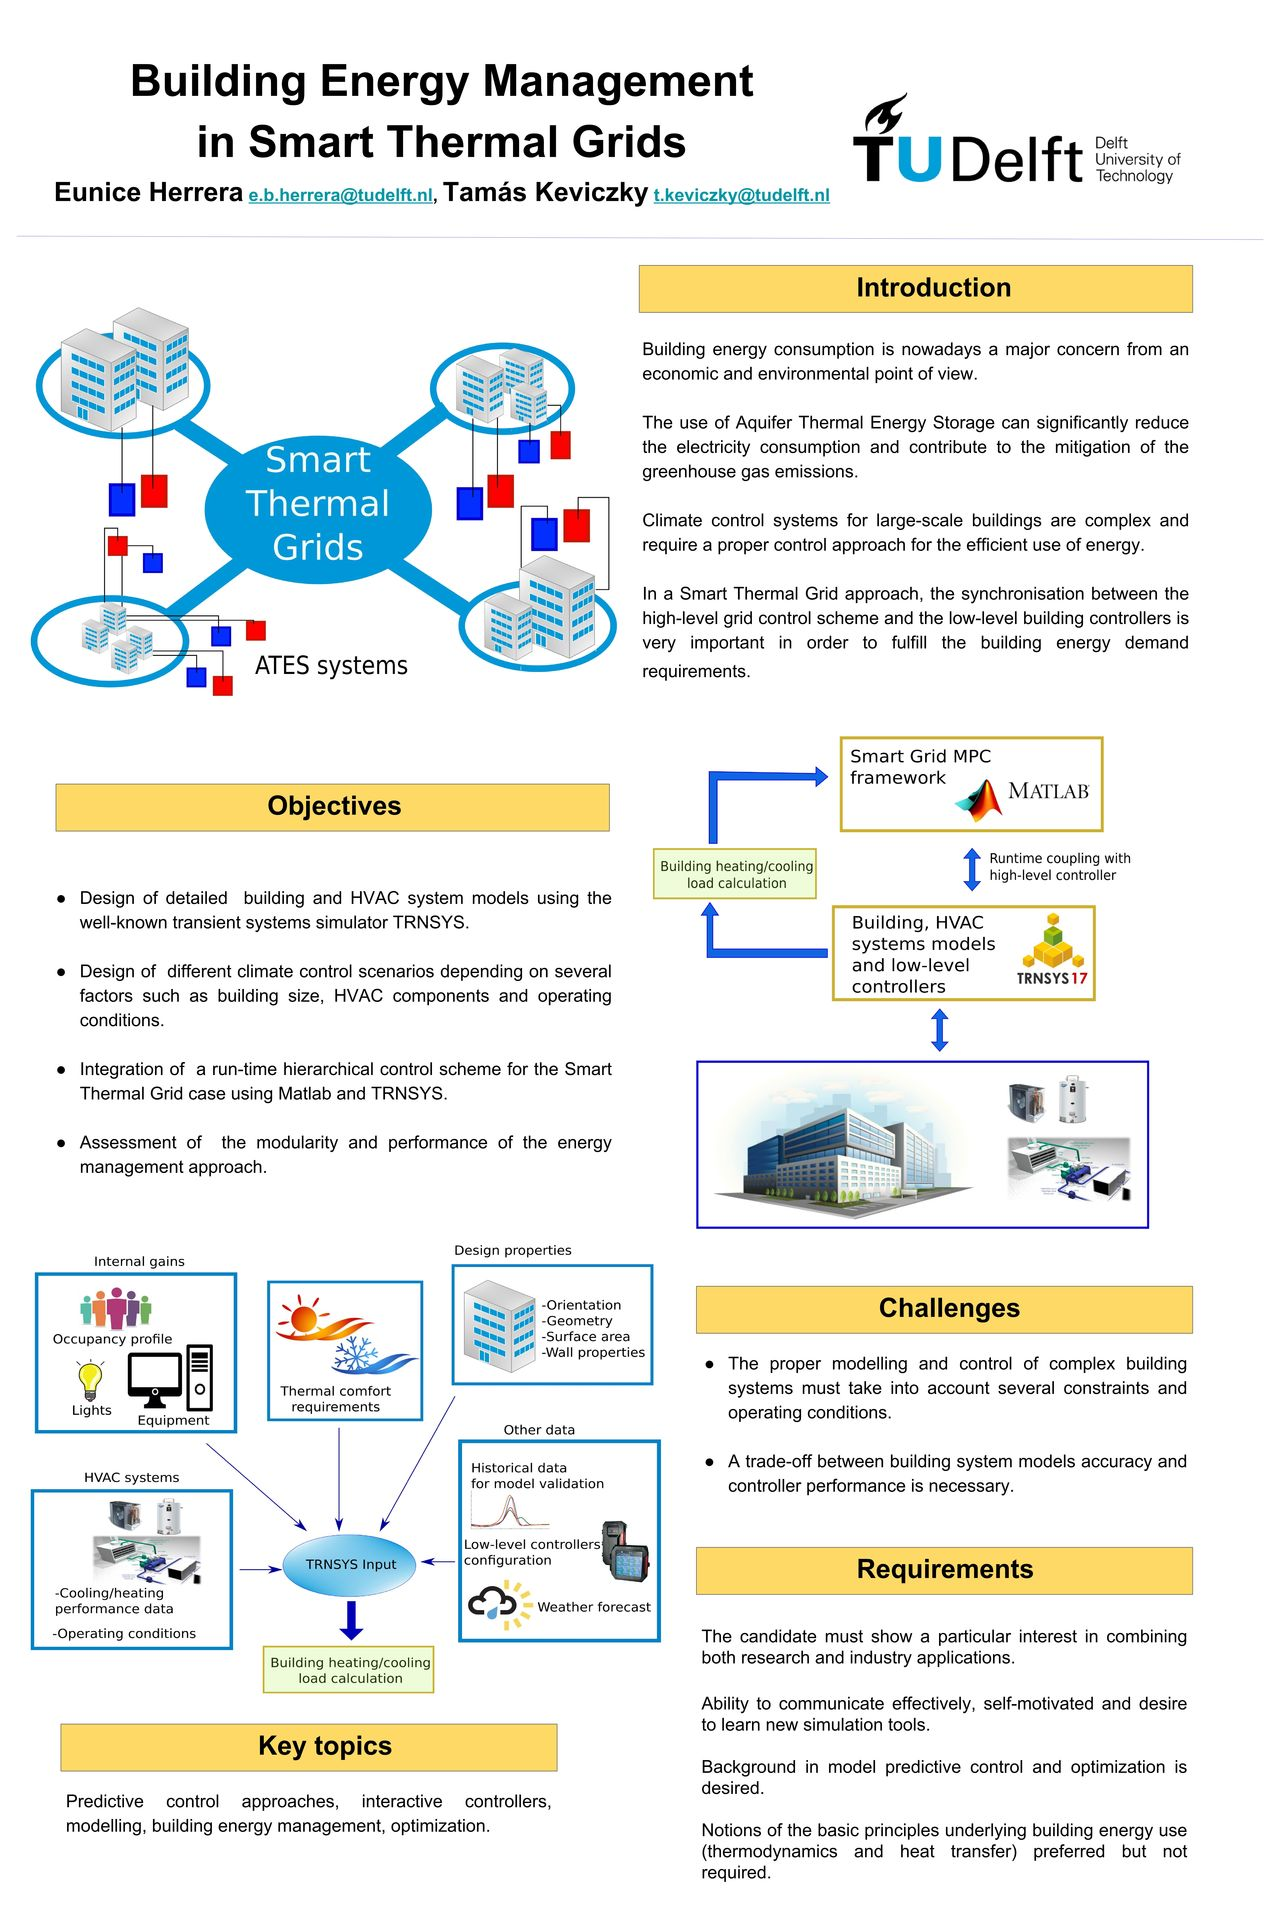 control in msc system thesis Simulation validation of three nonlinear model-based controllers in the adaptive cruise control system  adaptive cruise control and driver modelling msc thesis, lund university, sweden (2001)  adaptive cruise controller simulation as an embedded distributed system msc thesis, linkoping university, sweden (2007).